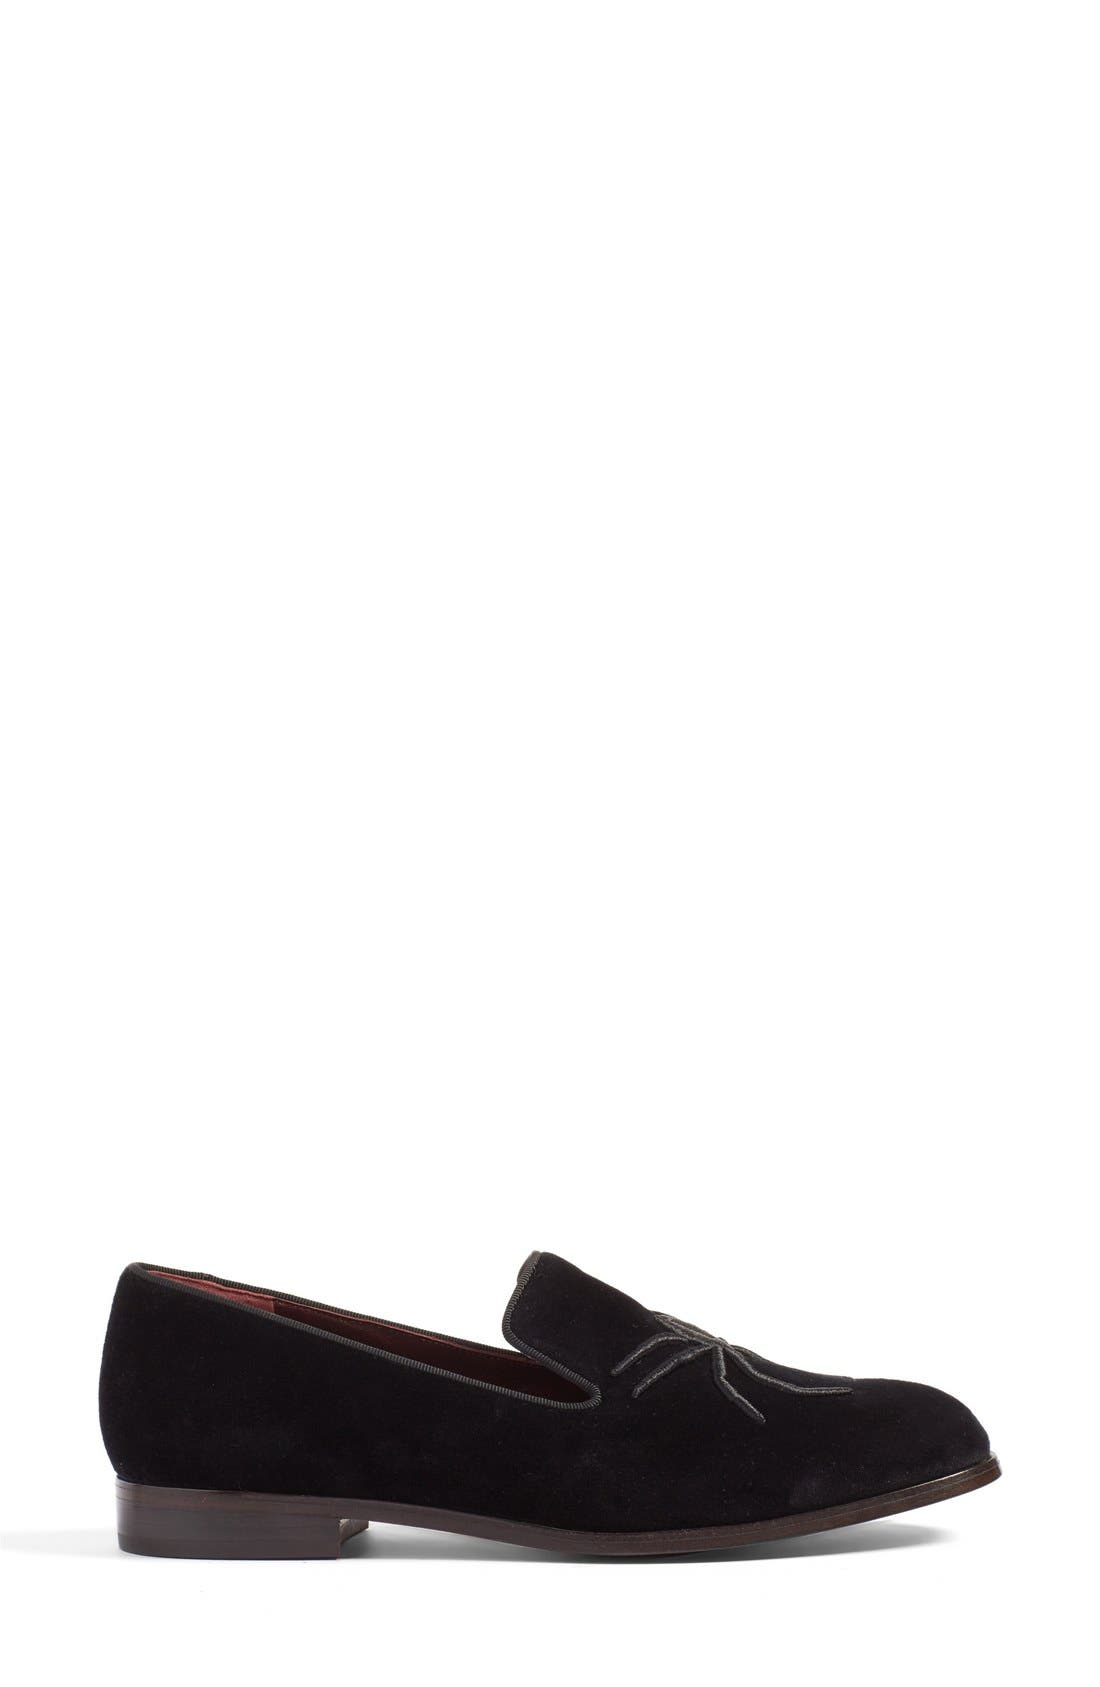 Alternate Image 4  - MARC JACOBS 'Zoe' Embroidered Spider Loafer (Women)